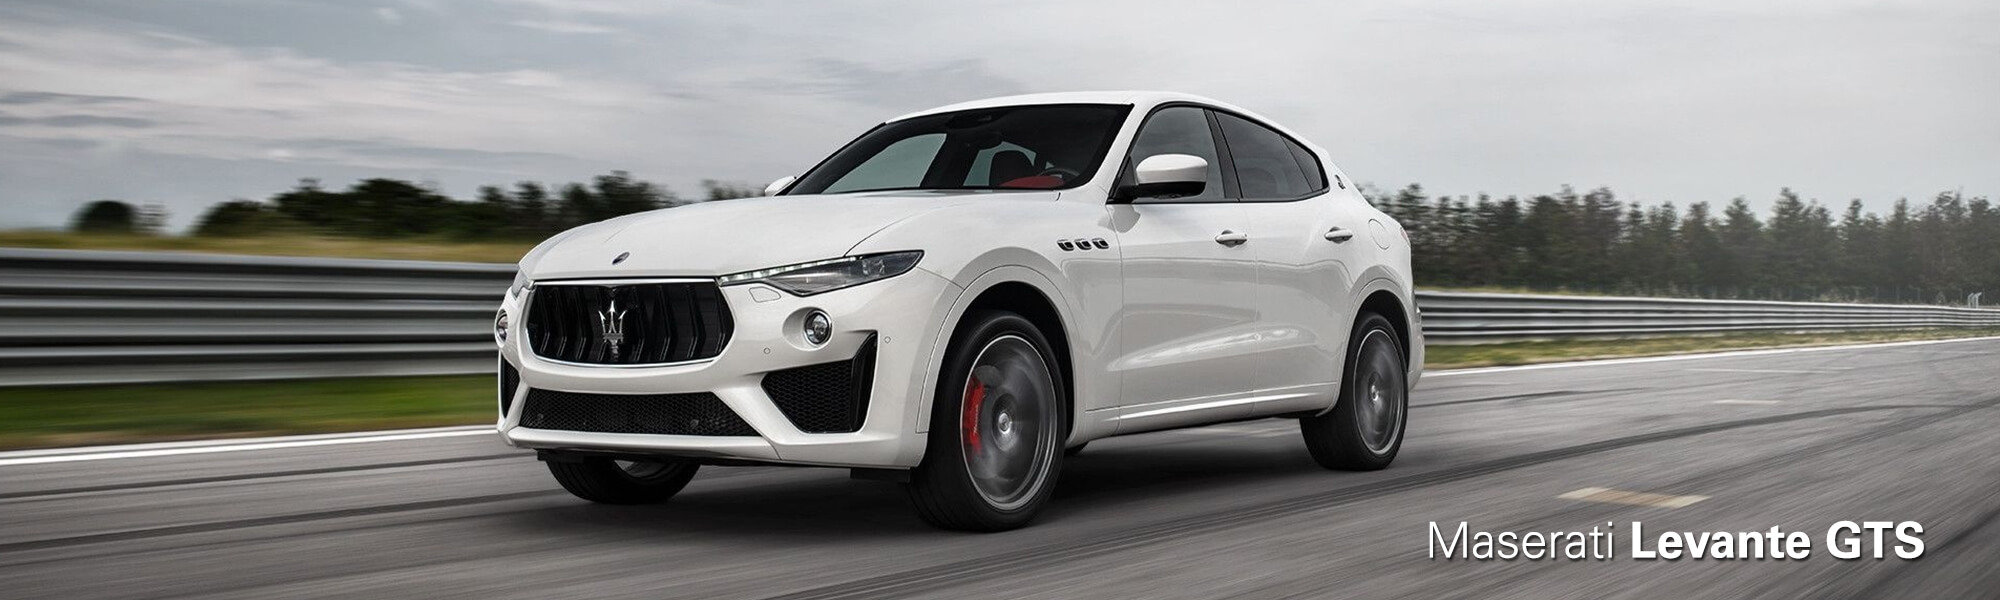 all new 2019 maserati levante gts driving through wilkes-barre pa